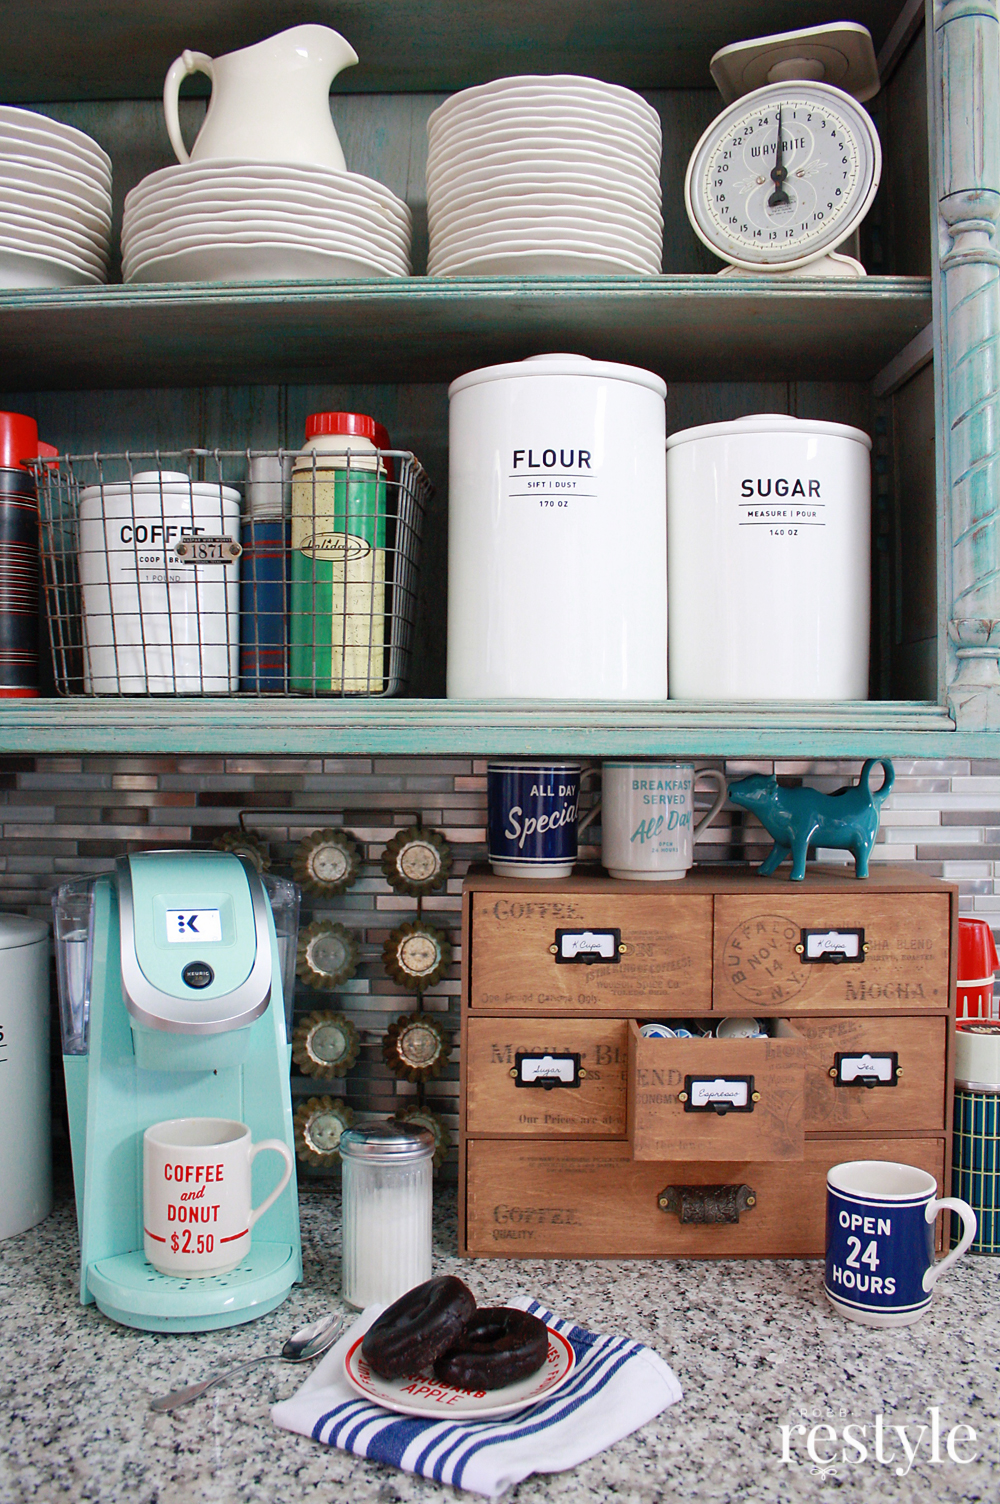 This IKEA Moppe is fun and functional kitchen storage